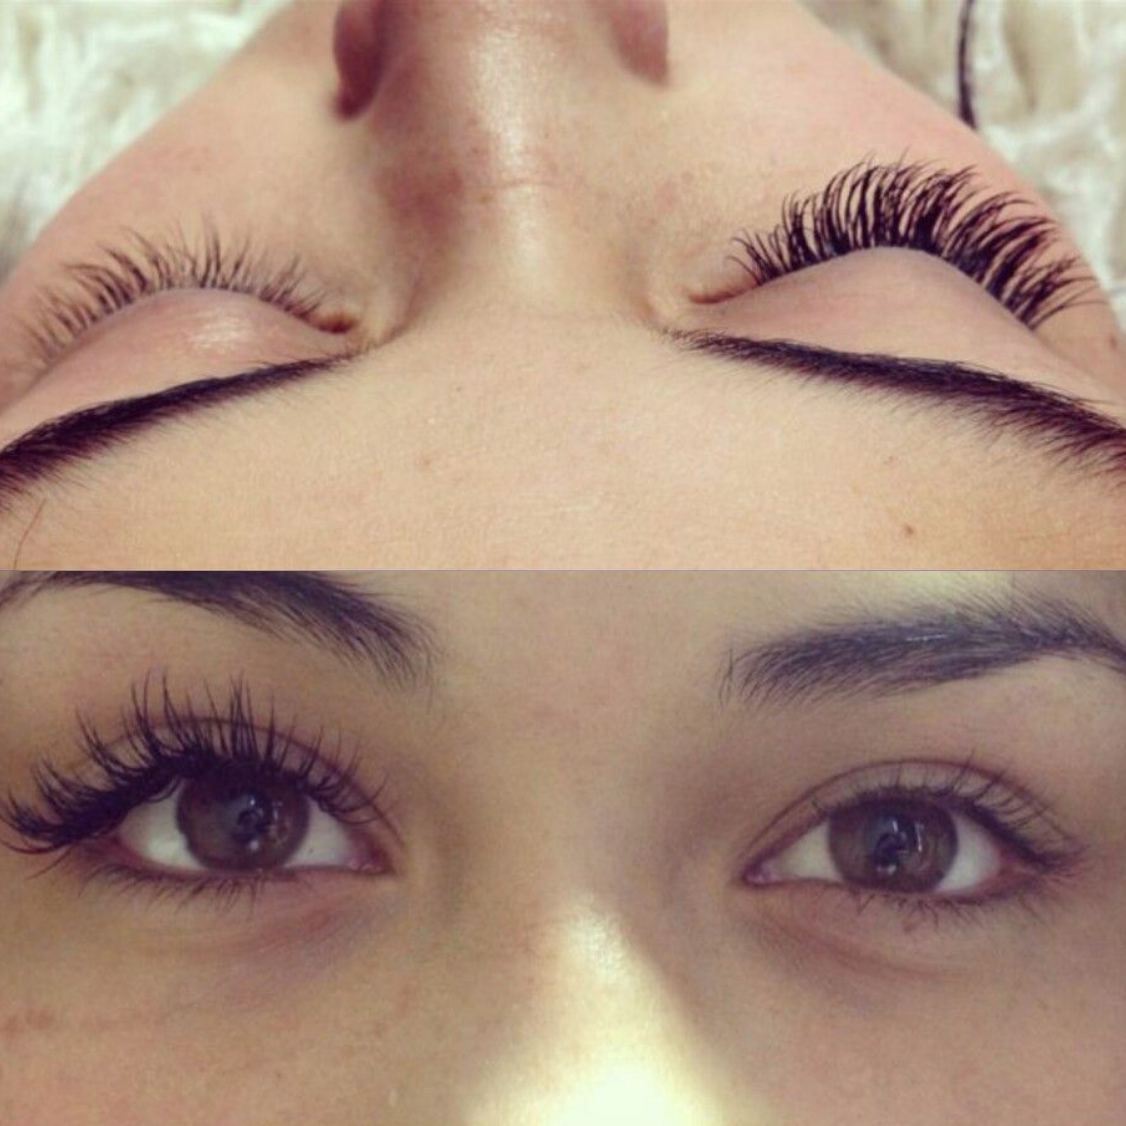 4817238c40e At Ahoy Lashes we want you to always look & feel your very best. We're  offering Toronto's most high-end lash extensions and we guarantee you  superior and ...